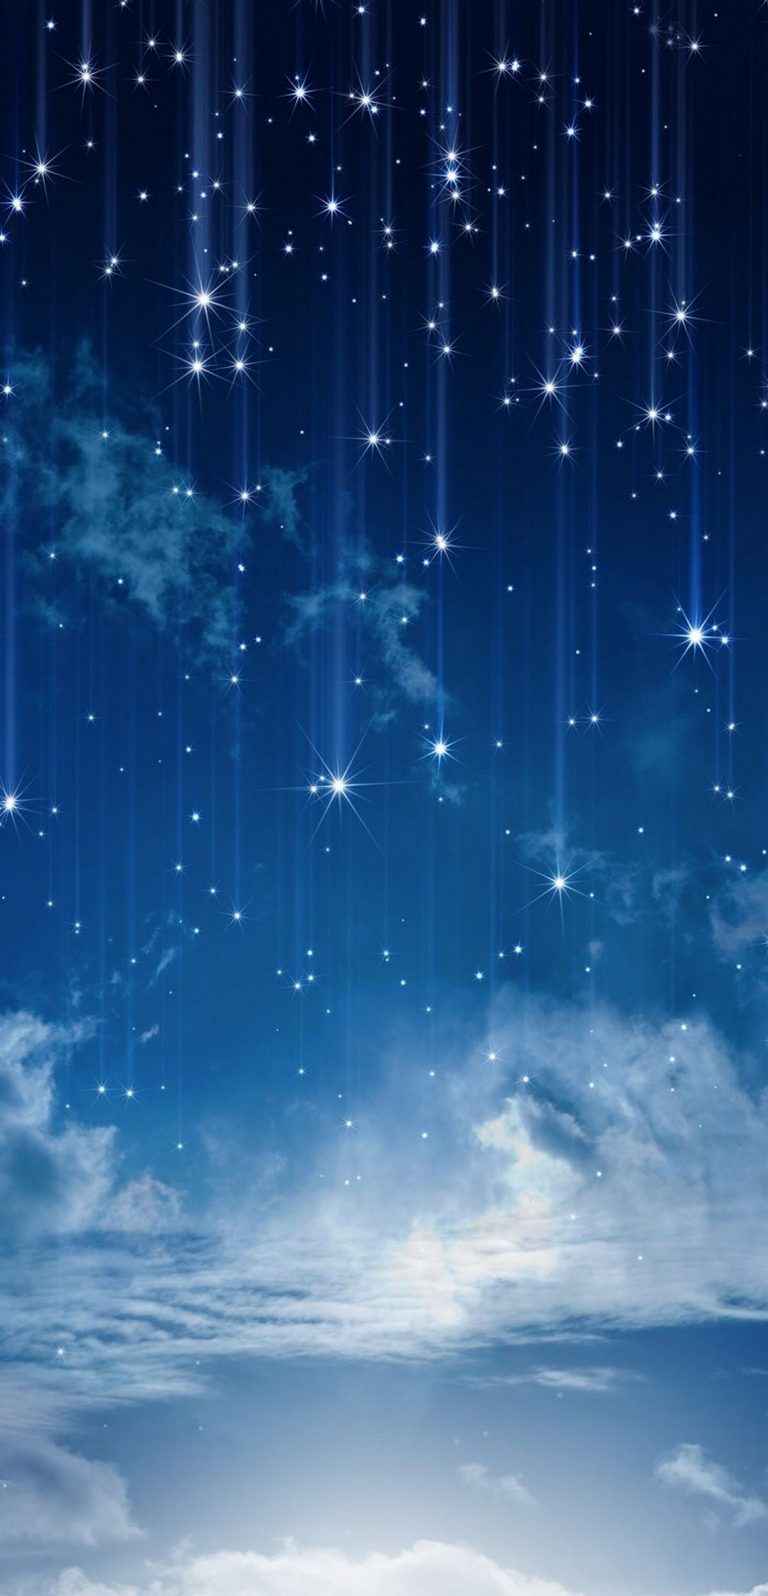 Sky Moonlight Nature Night Stars Clouds 1080x2244 768x1596